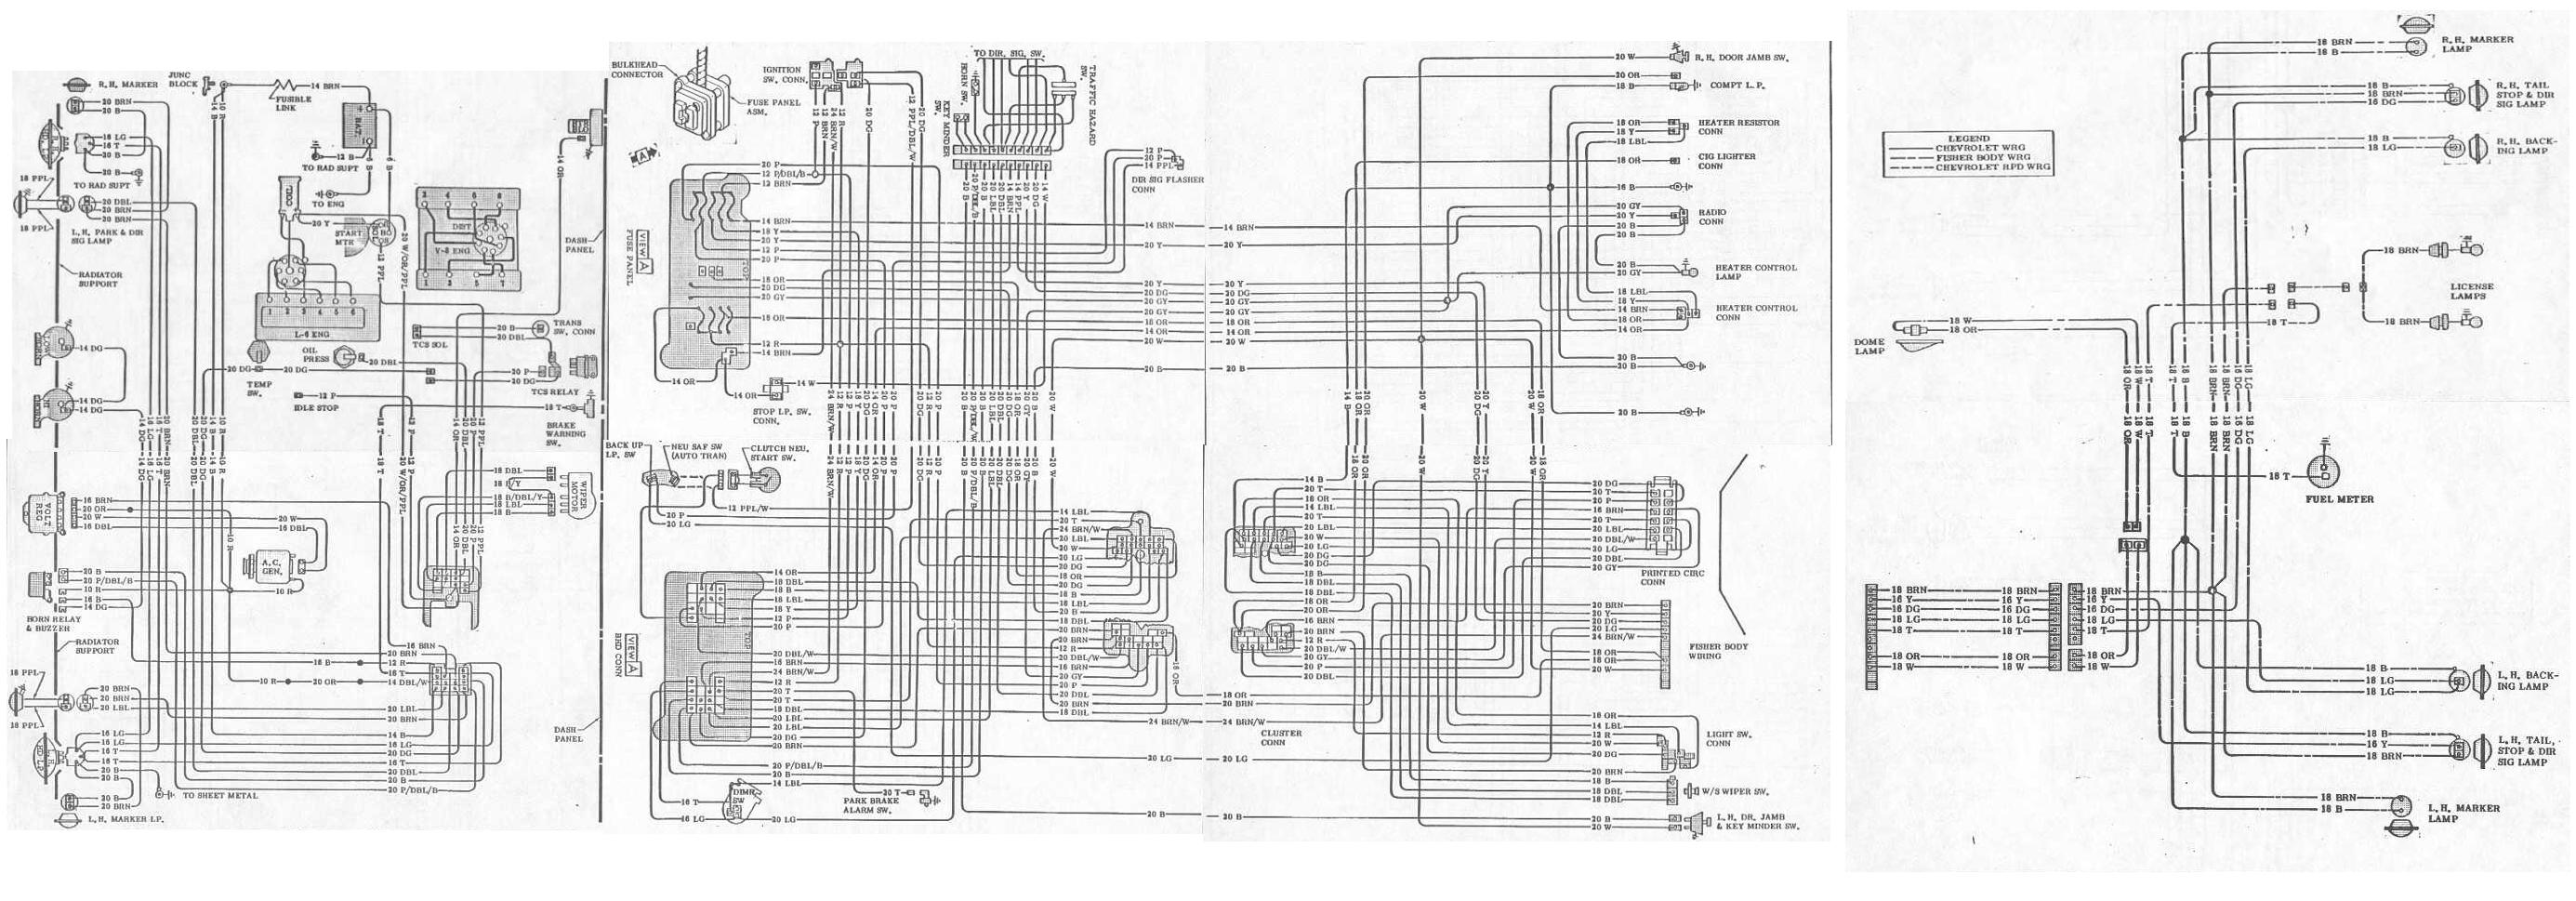 1981 Trans Am Fuse Diagram Example Electrical Wiring Diagram \u2022 1983  Pontiac Firebird Fuse Box 1981 Trans Am Fuse Box